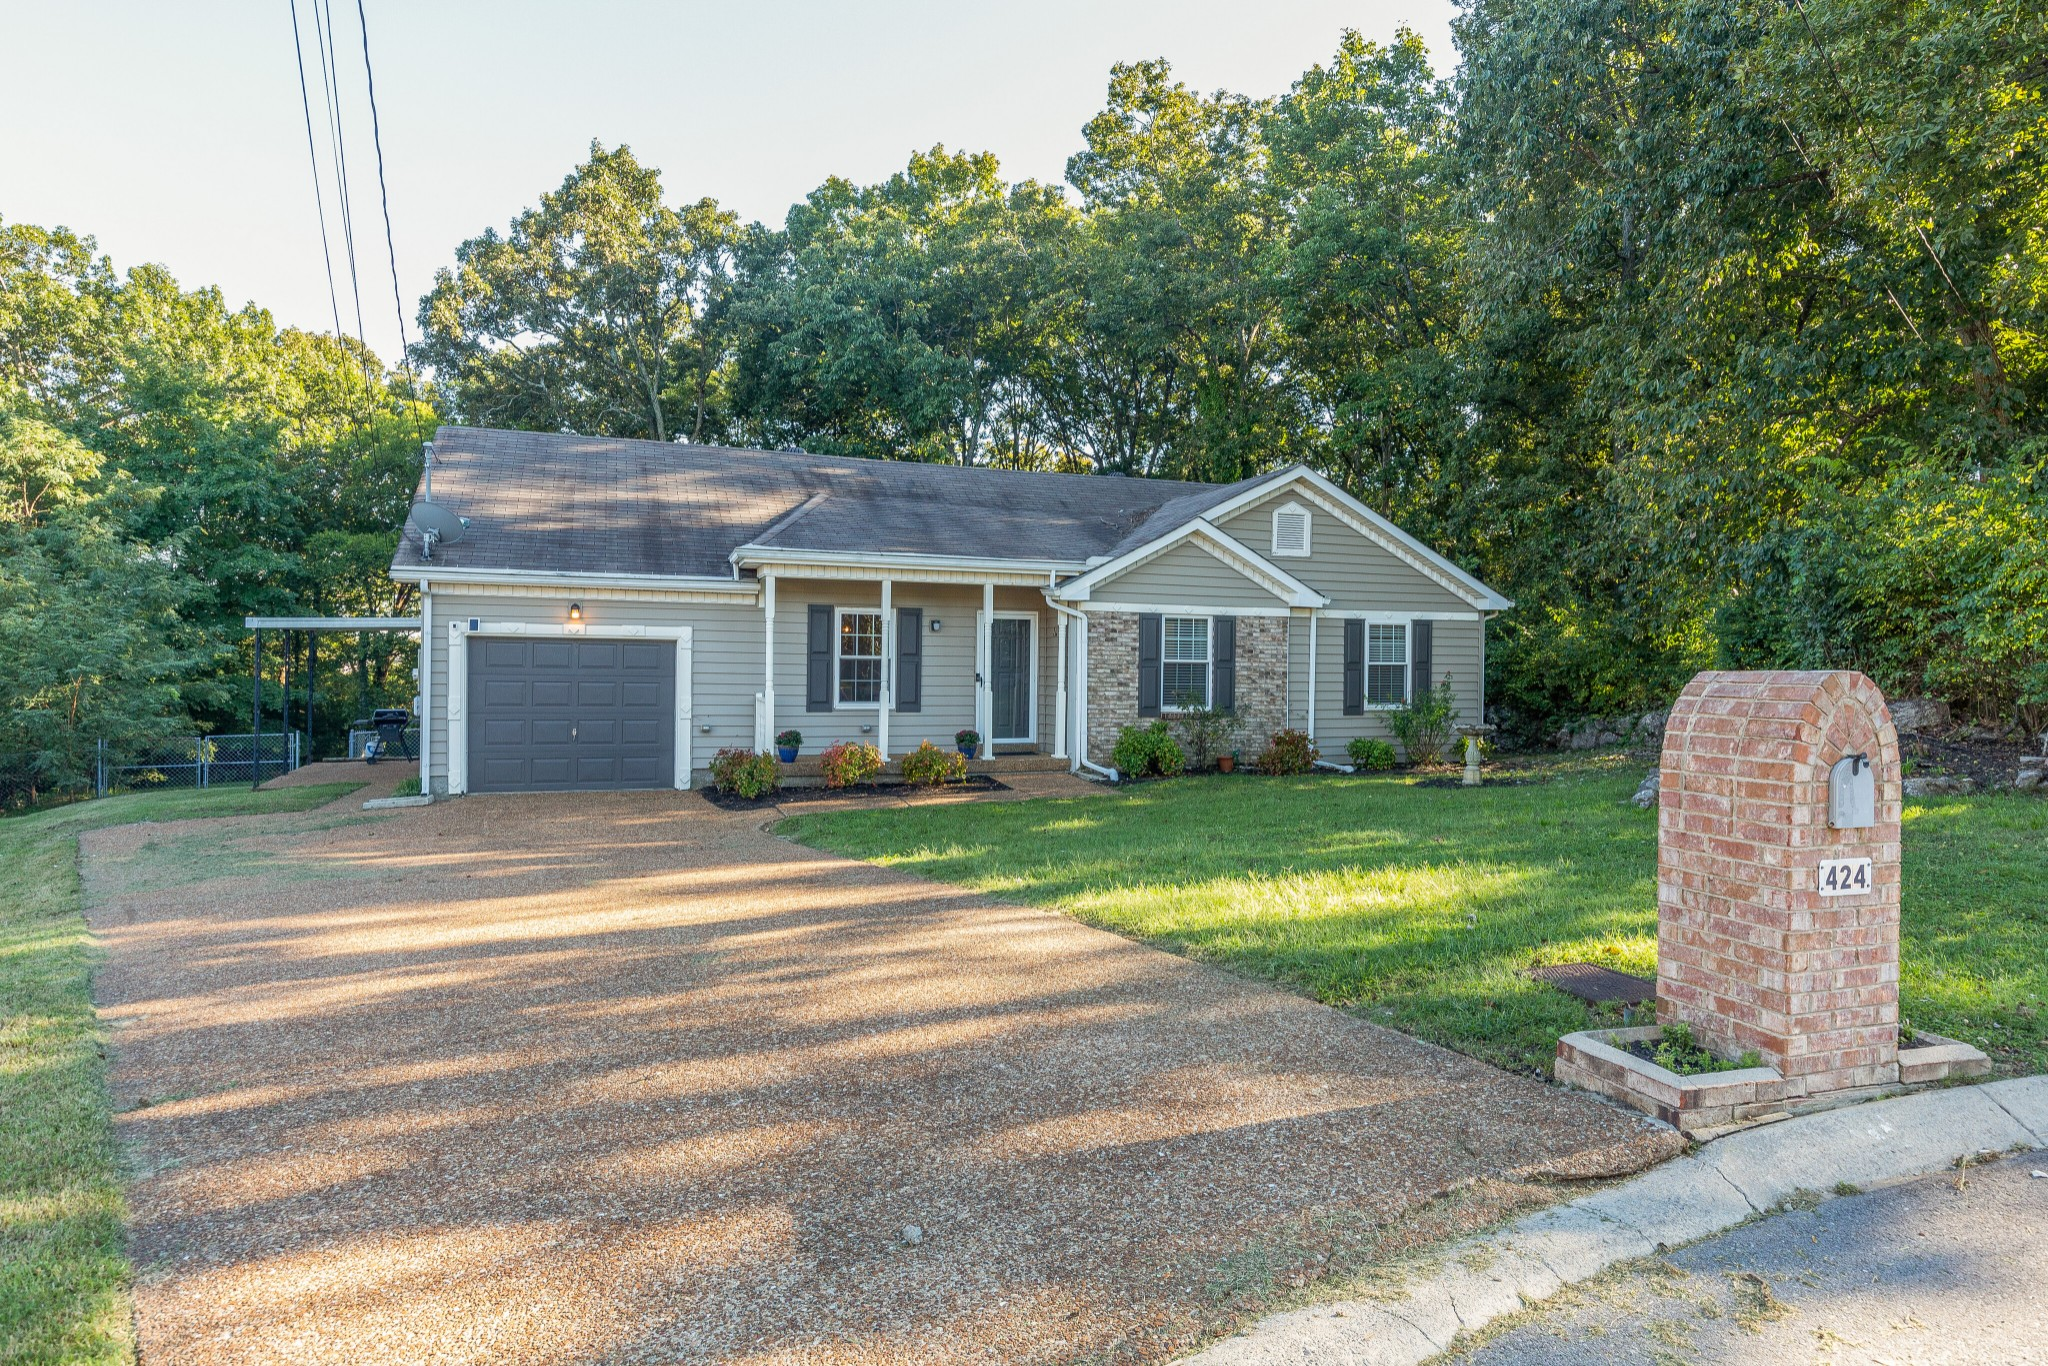 Updated 3 bedroom, 2 bath home. This home is move in ready and has new flooring and paint throughout! One level home on a large lot. Screened in patio, private back yard, and storage sheds stay! Water heater is 2 years old.